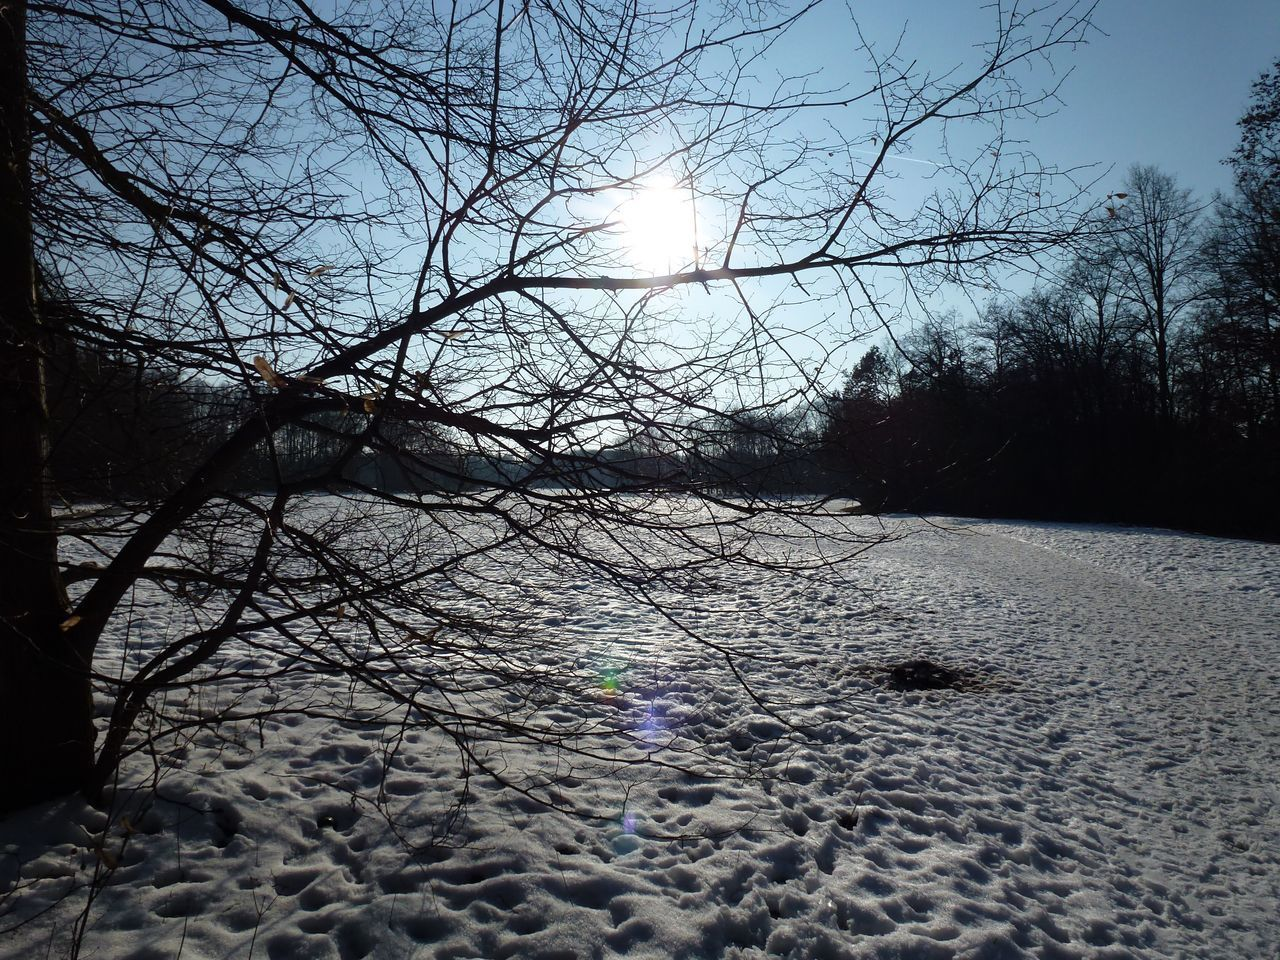 tree, snow, tranquility, nature, winter, no people, sky, bare tree, land, plant, cold temperature, sunlight, tranquil scene, beauty in nature, environment, sun, outdoors, scenics - nature, branch, lens flare, bright, pollution